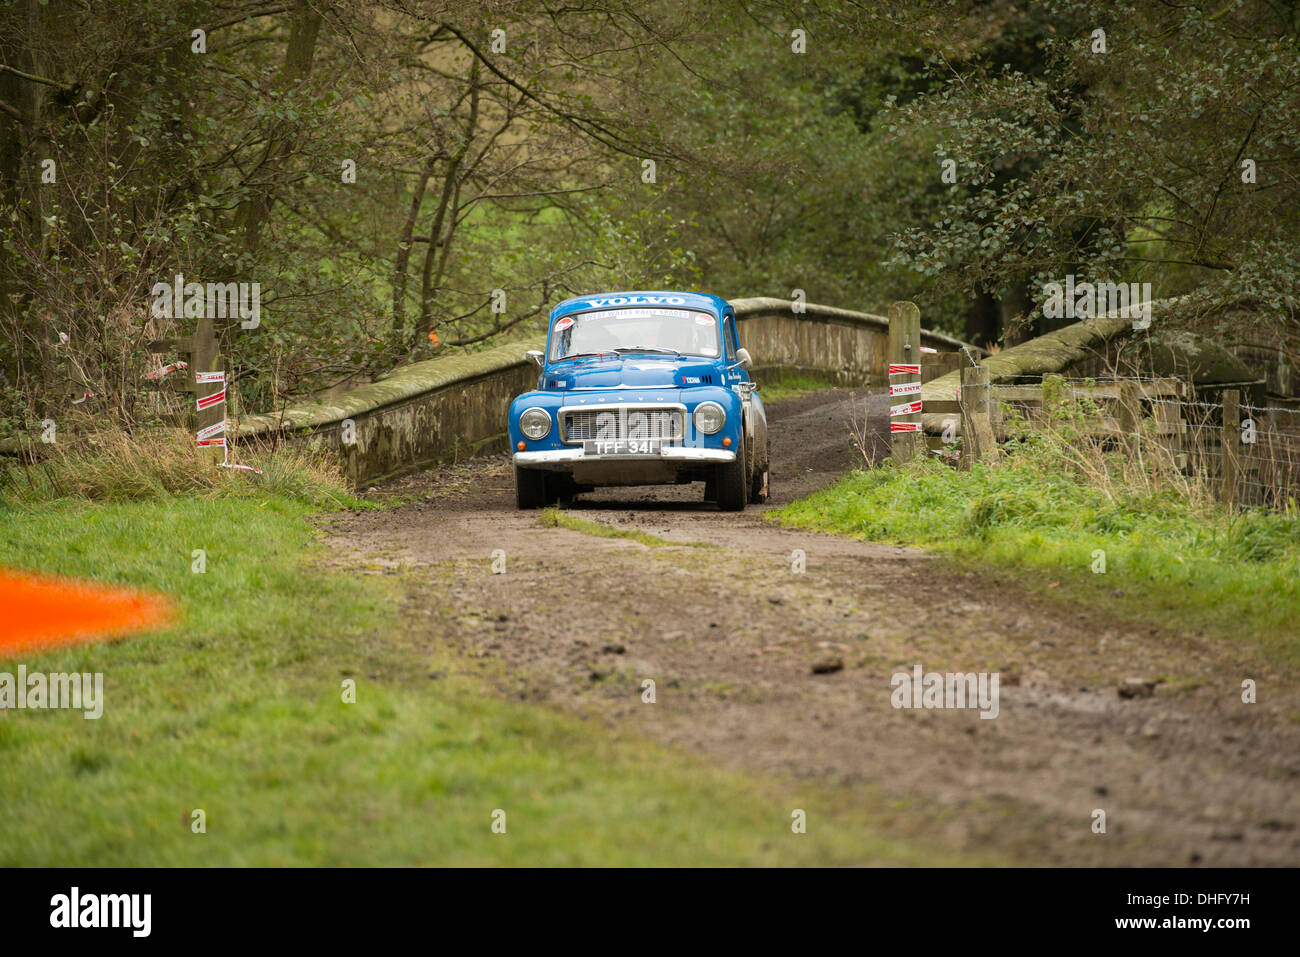 Duncombe Park, North Yorkshire, UK . 09th Nov, 2013. UK RAC Rally Duncombe Park Special Stage 8. Ian Beveridge and Peter Joy in a Volvo PV544. Credit:  Geoff Tweddle/Alamy Live News - Stock Image